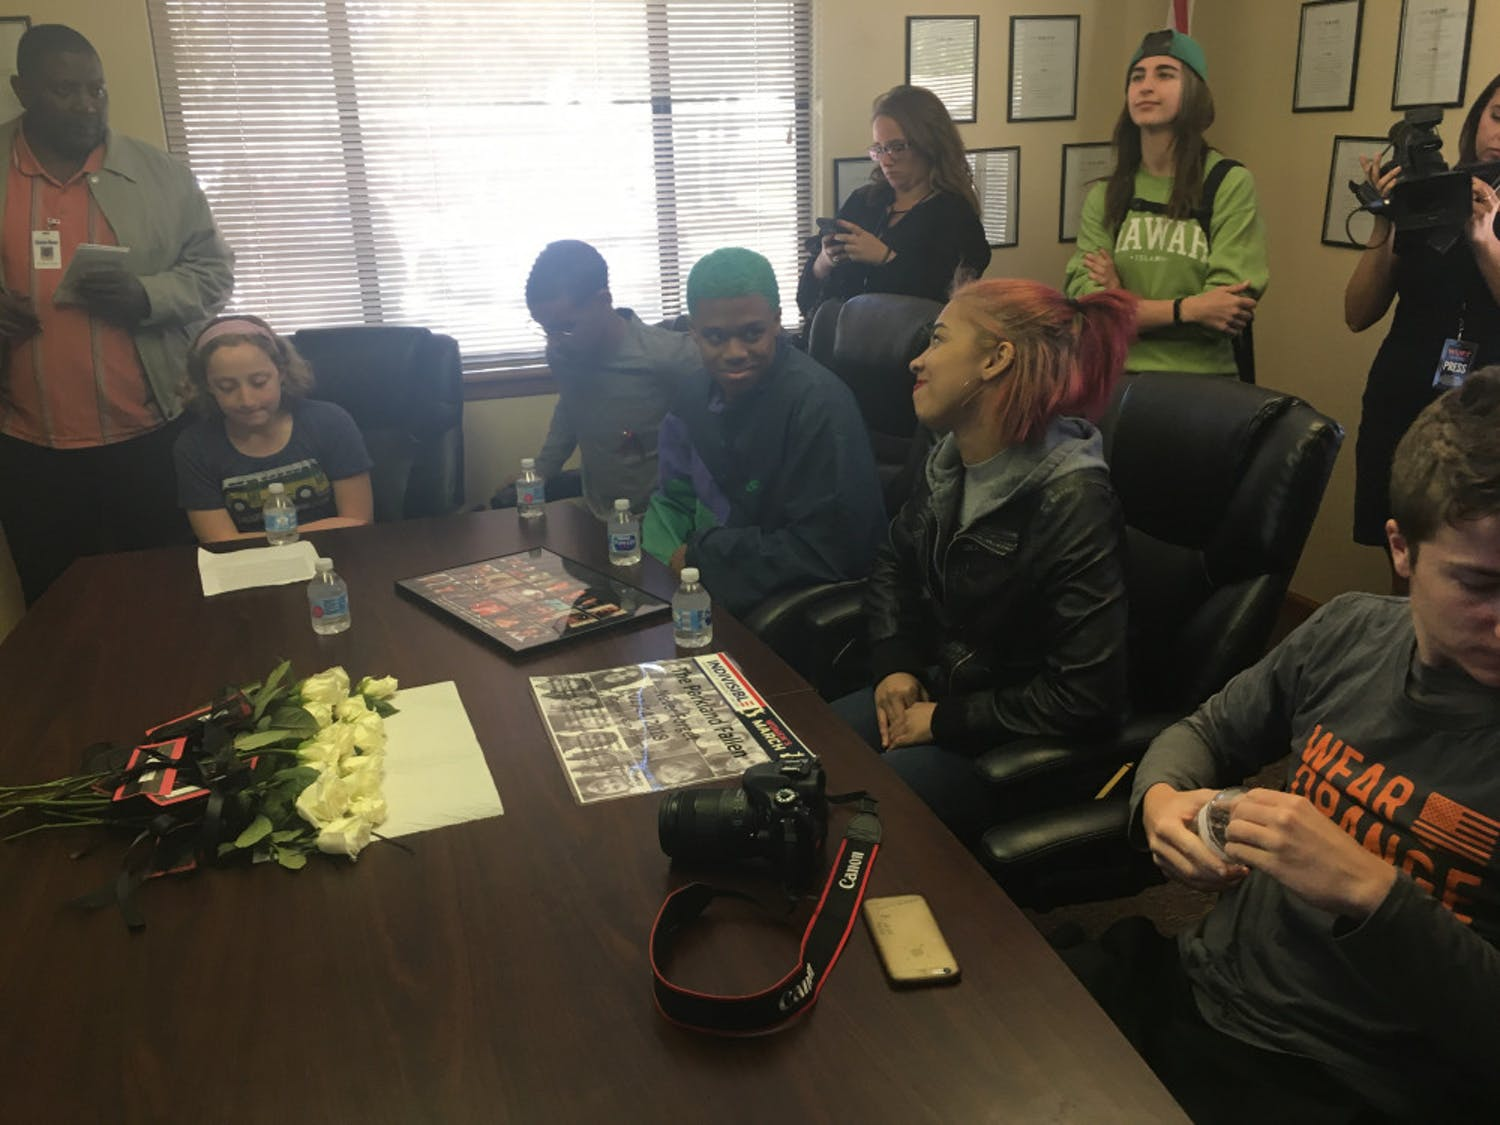 Five students, including one middle schooler, Skyped with Congressman Ted Yoho, who was in his Washington D.C. office Wednesday during the nationwide Walkout Wednesday protest.